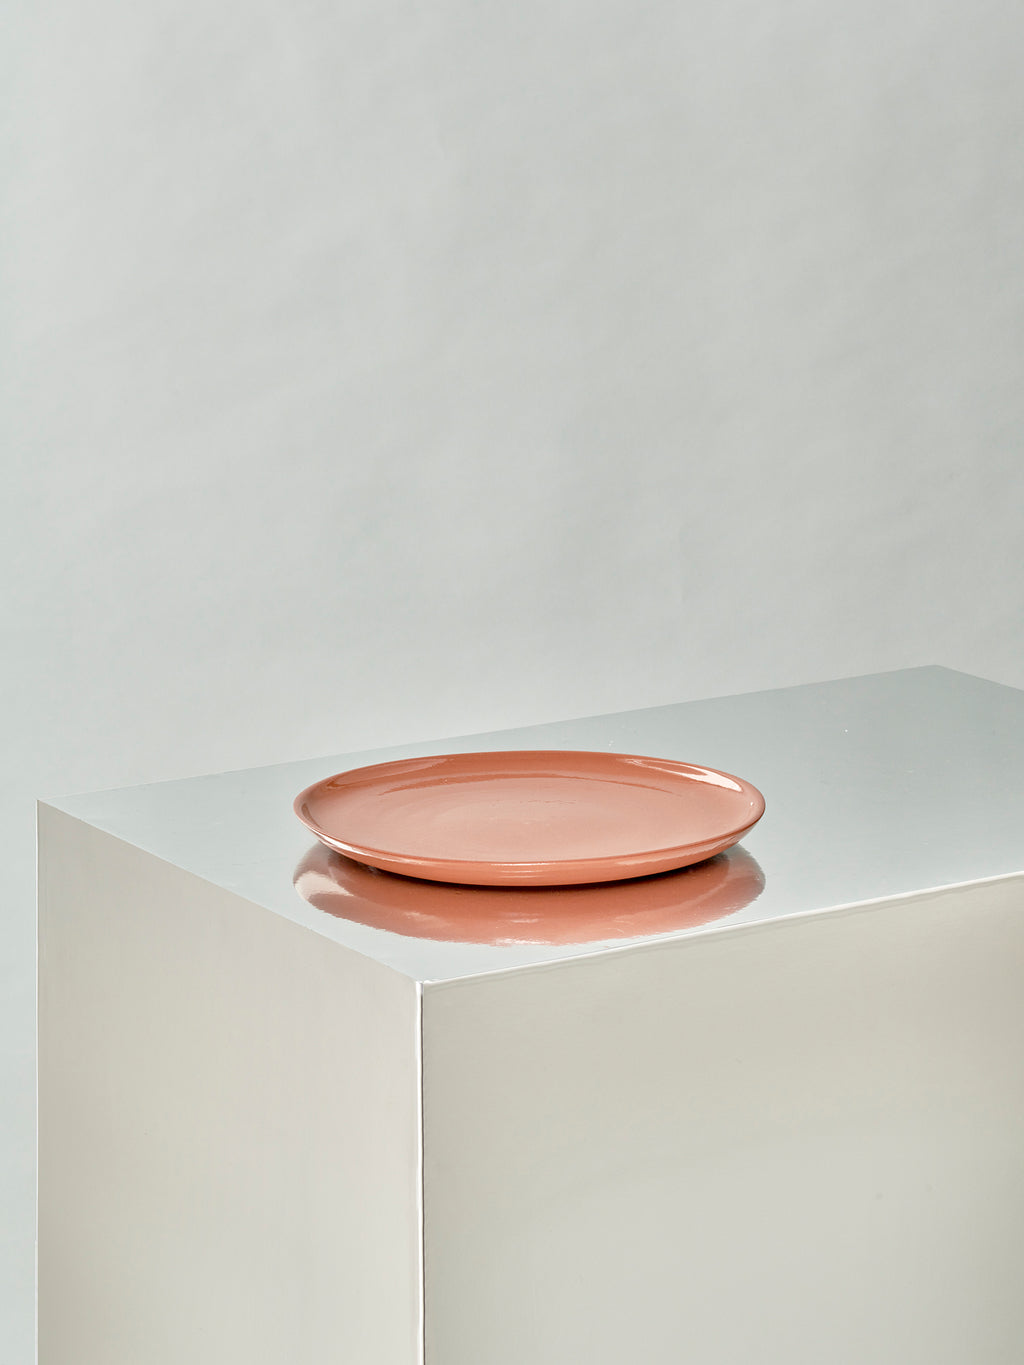 Giro - Assiette simple - Ø27